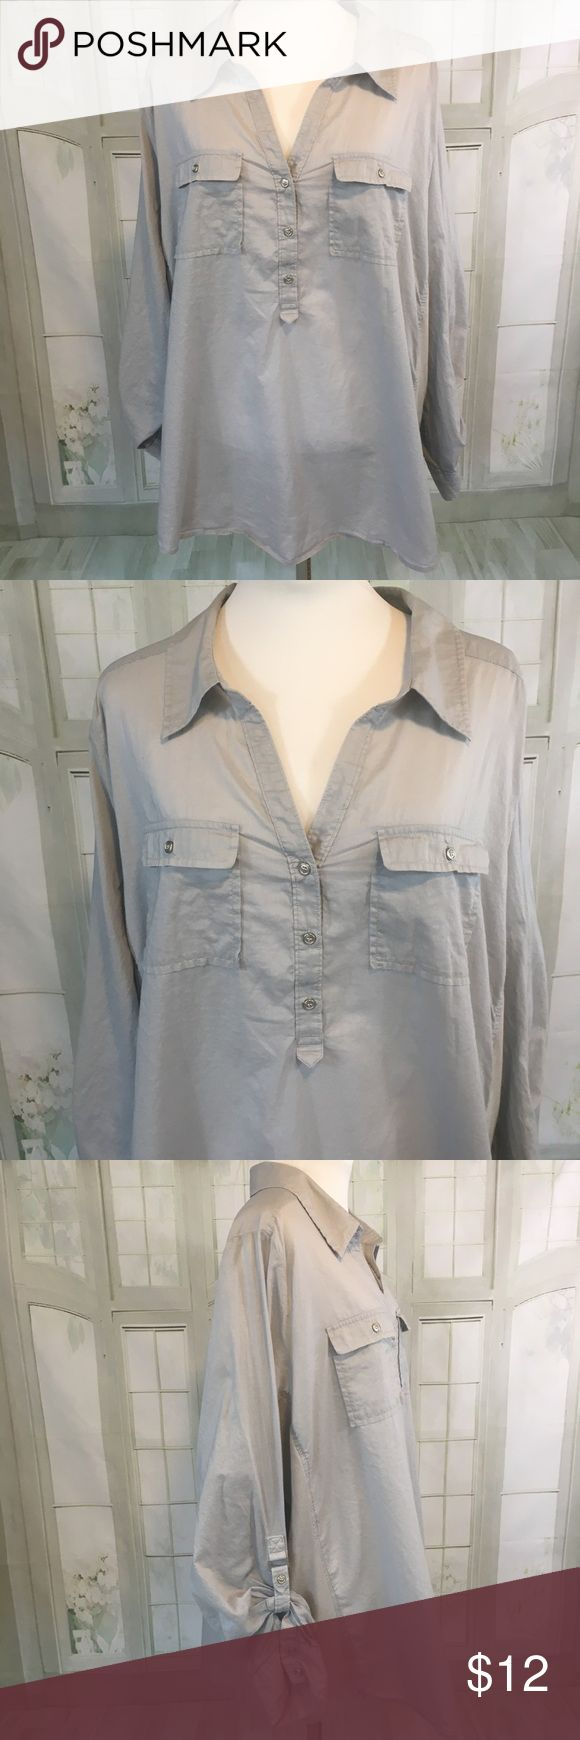 """Lane Bryant Size 26/28 Gray V Nick Tunic Lane Bryant Size 26/28 Gray V Nick Tunic. Excellent condition - no flaws. 100% Cotton with Stretchy material on the sides for Accentuating and optimal fit. Nice silver accent buttons. Pit to Pit 29"""". Length: 29"""" Lane Bryant Tops Tunics"""